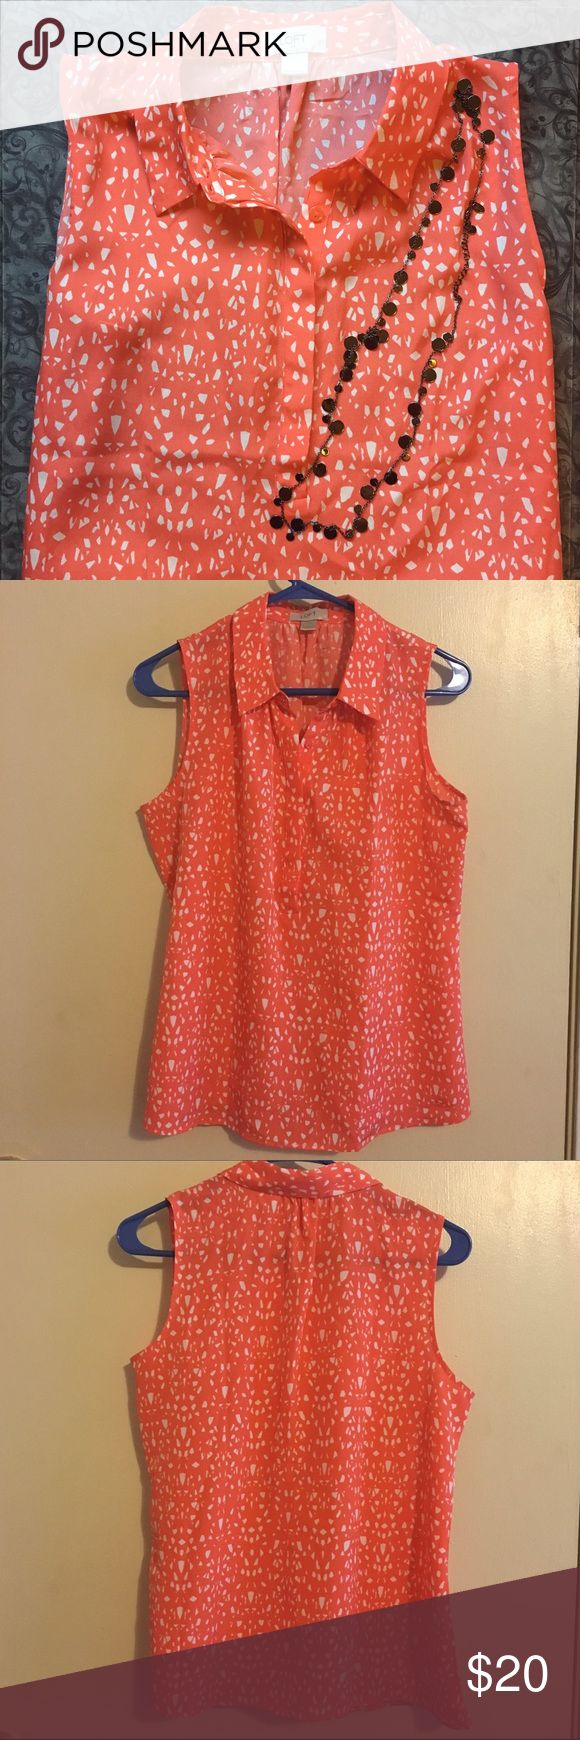 Ann Taylor LOFT dark peach colored sleeveless top Ann Taylor LOFT sleeveless top. Dark peach color with white pattern throughout. Hidden buttons on the front. Perfect for a casual day at the office or for running errands. Size small. Reasonable offers are always welcome. LOFT Tops